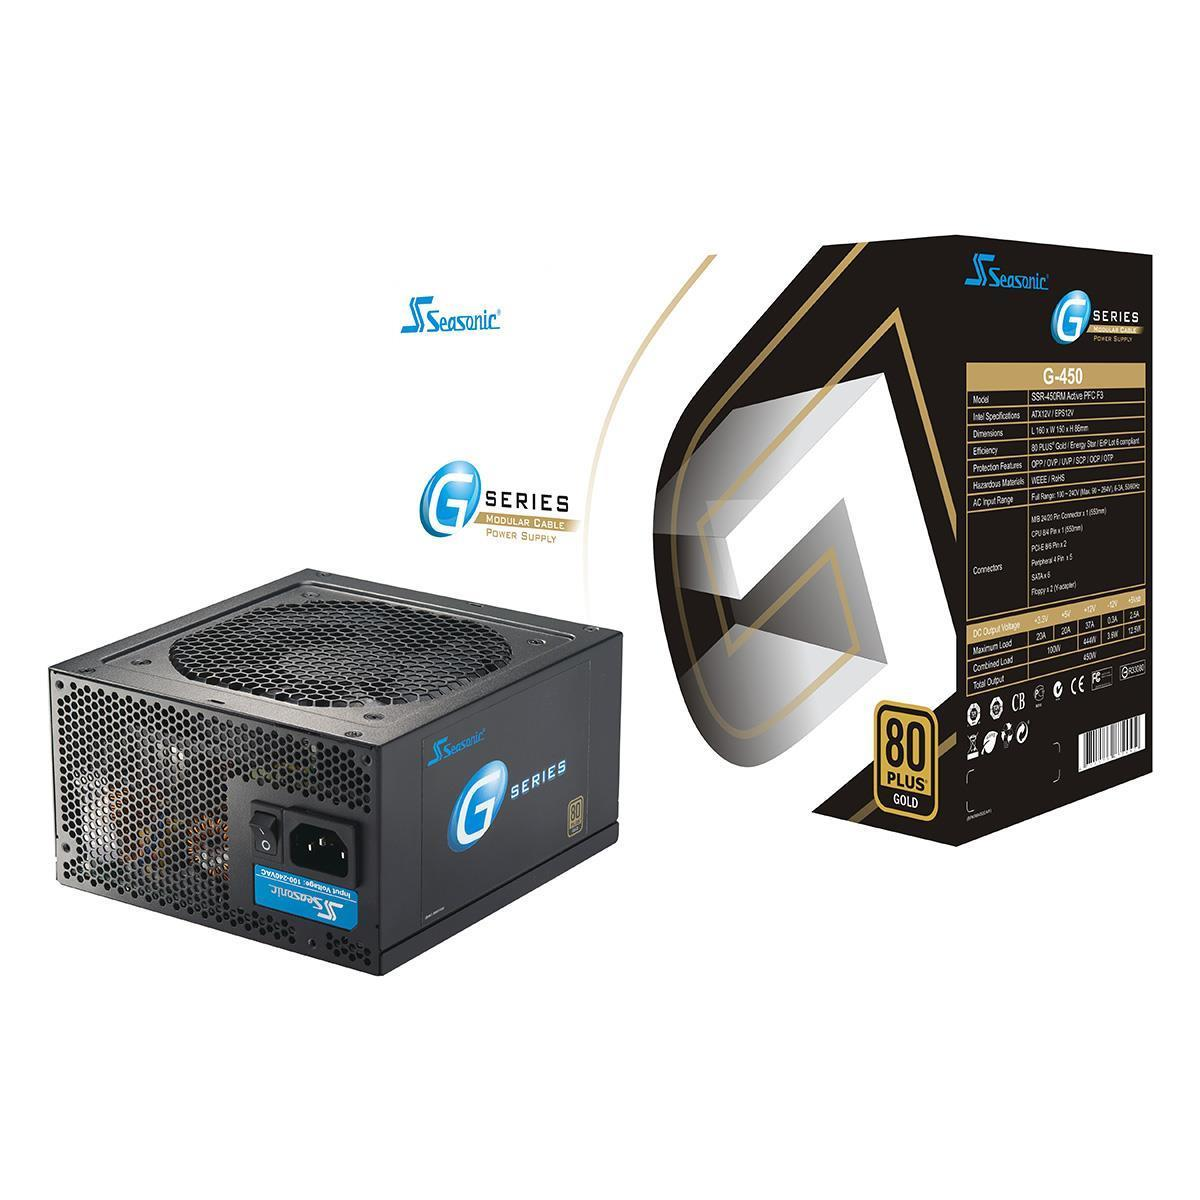 Seasonic G450 450W PSU